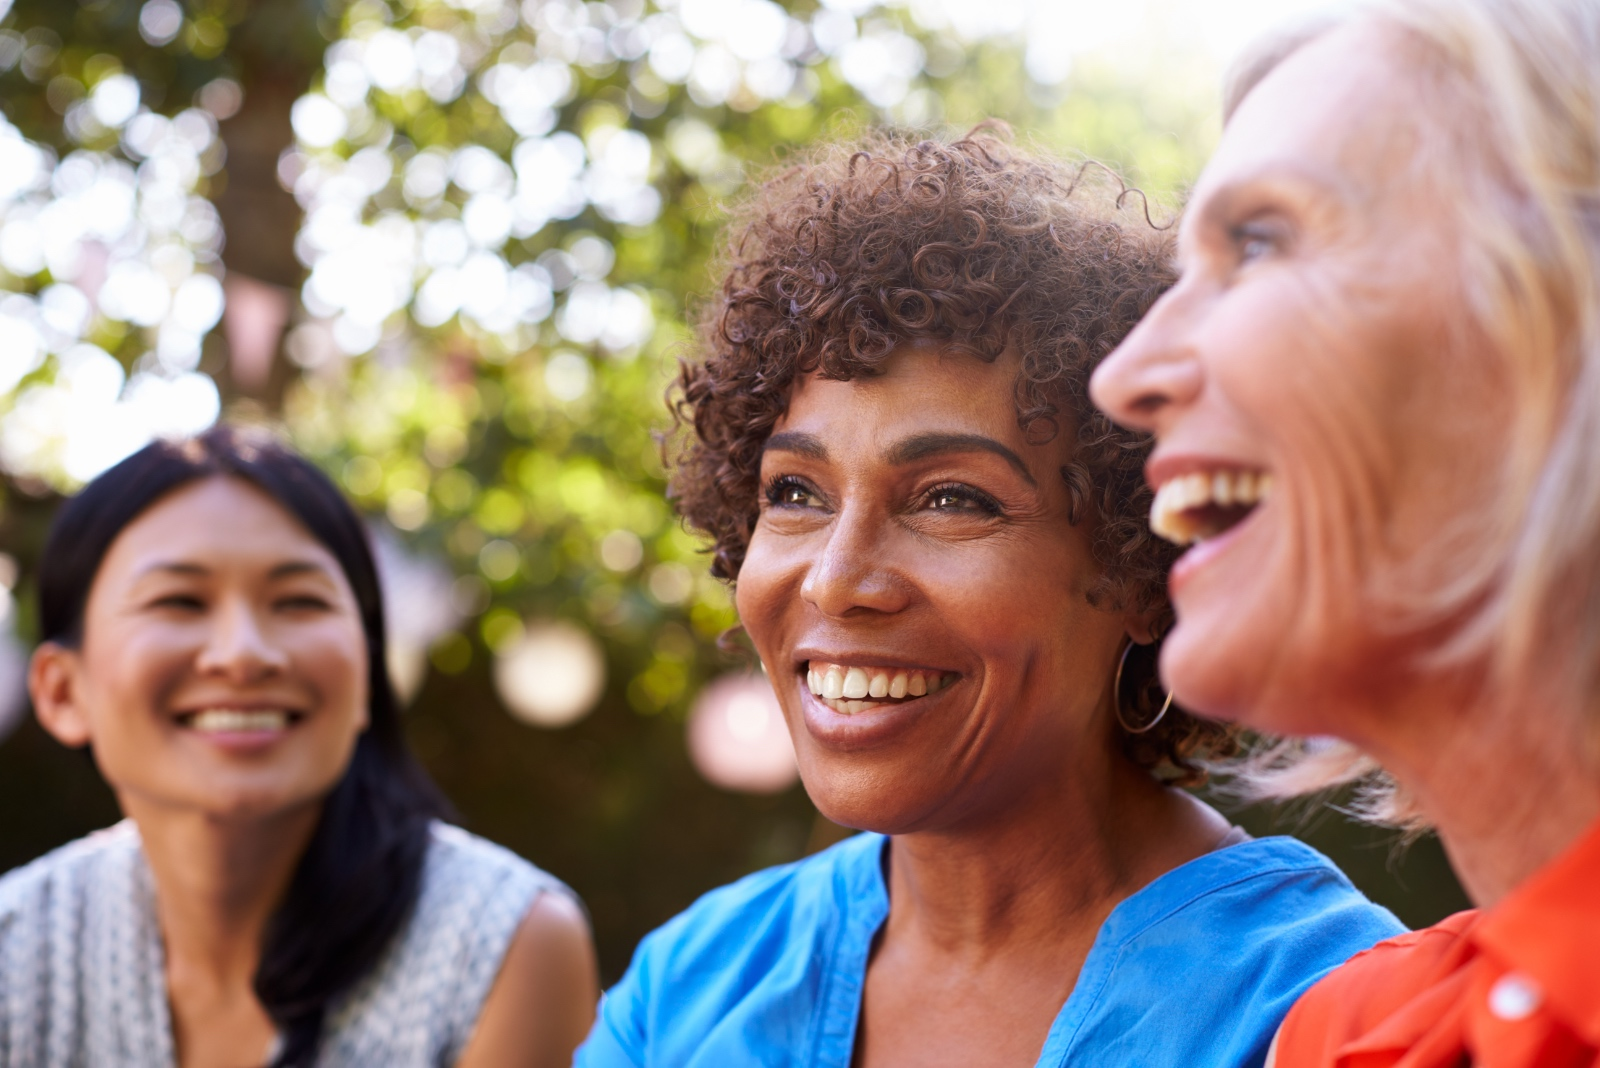 Women discussing the benefits of bioidentical hormone replacement therapy.